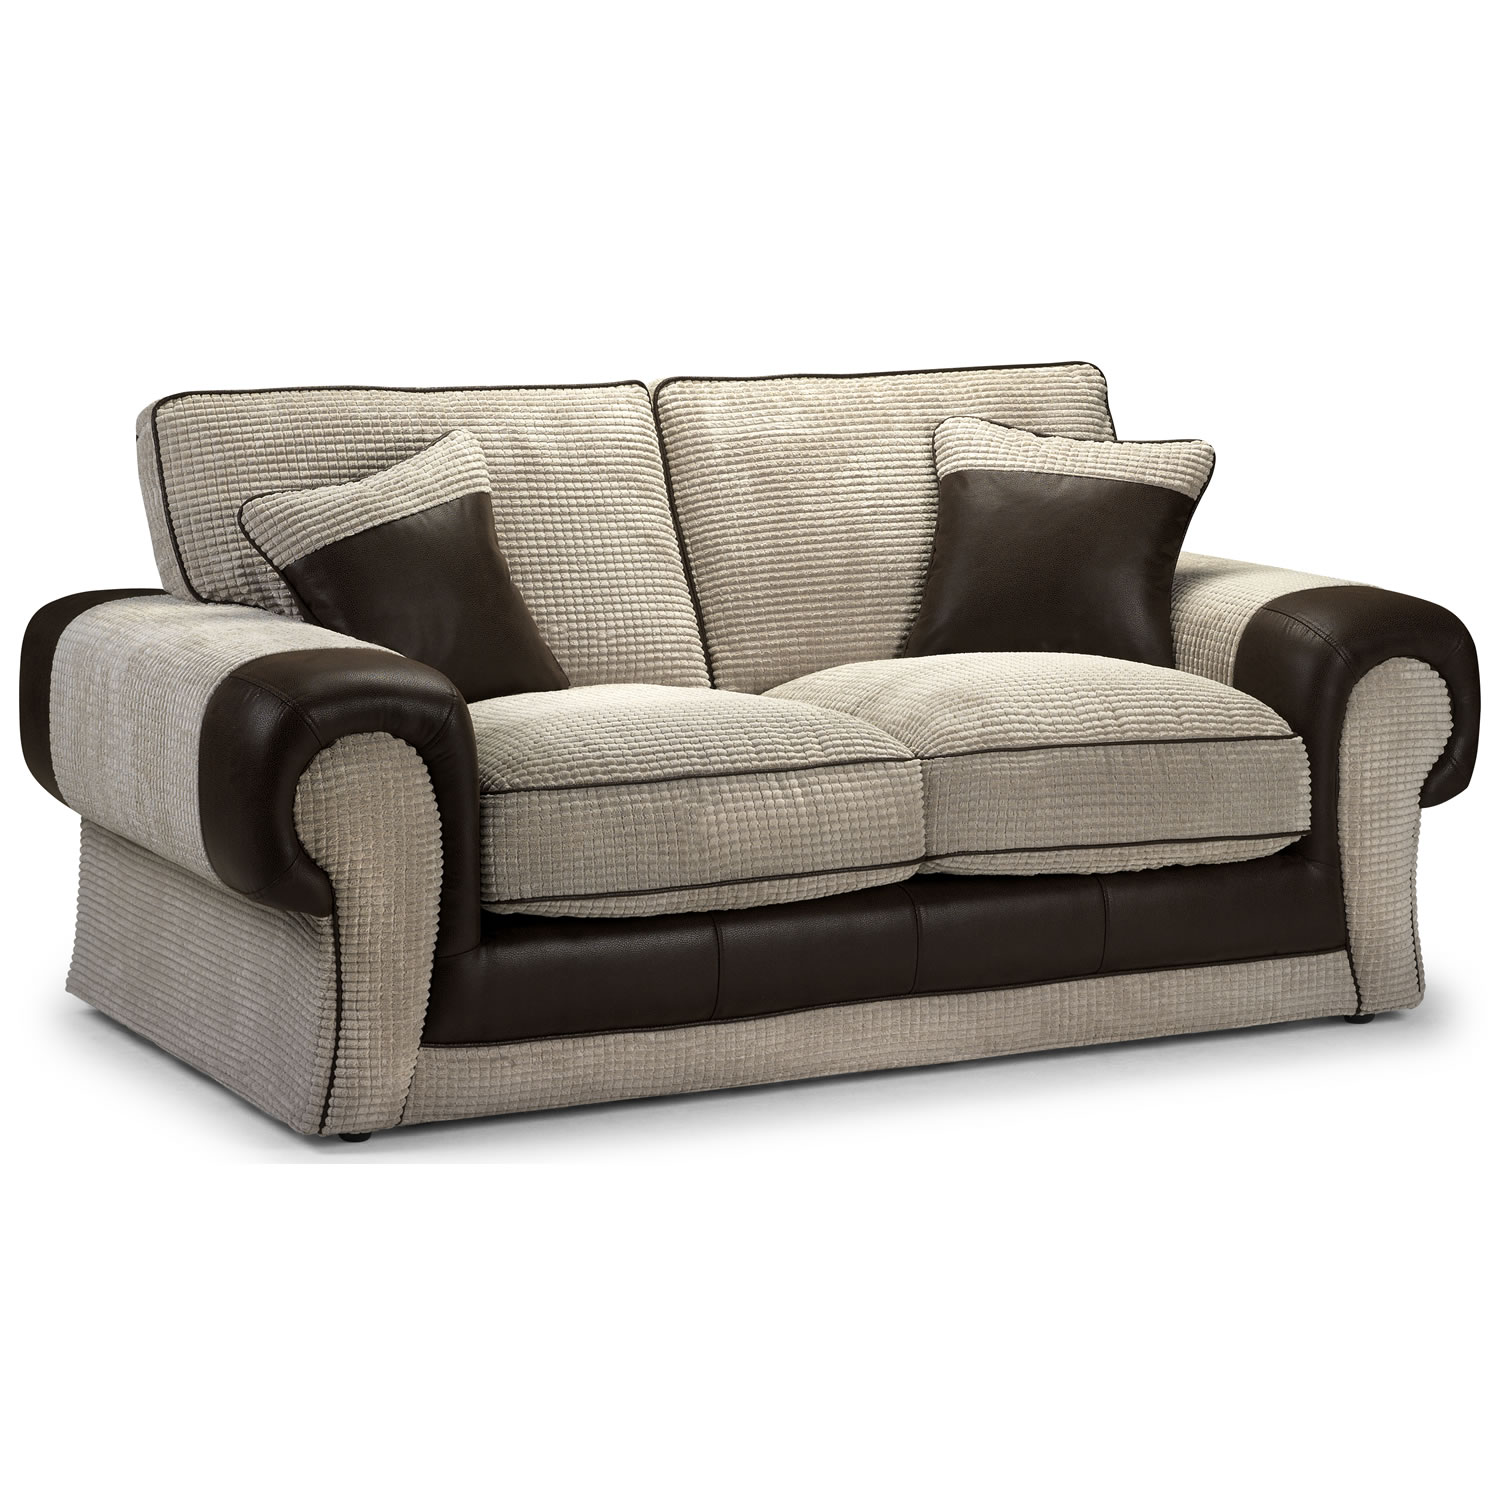 Two Seater Sofa A Space Saving Piece Of Furniture To Add